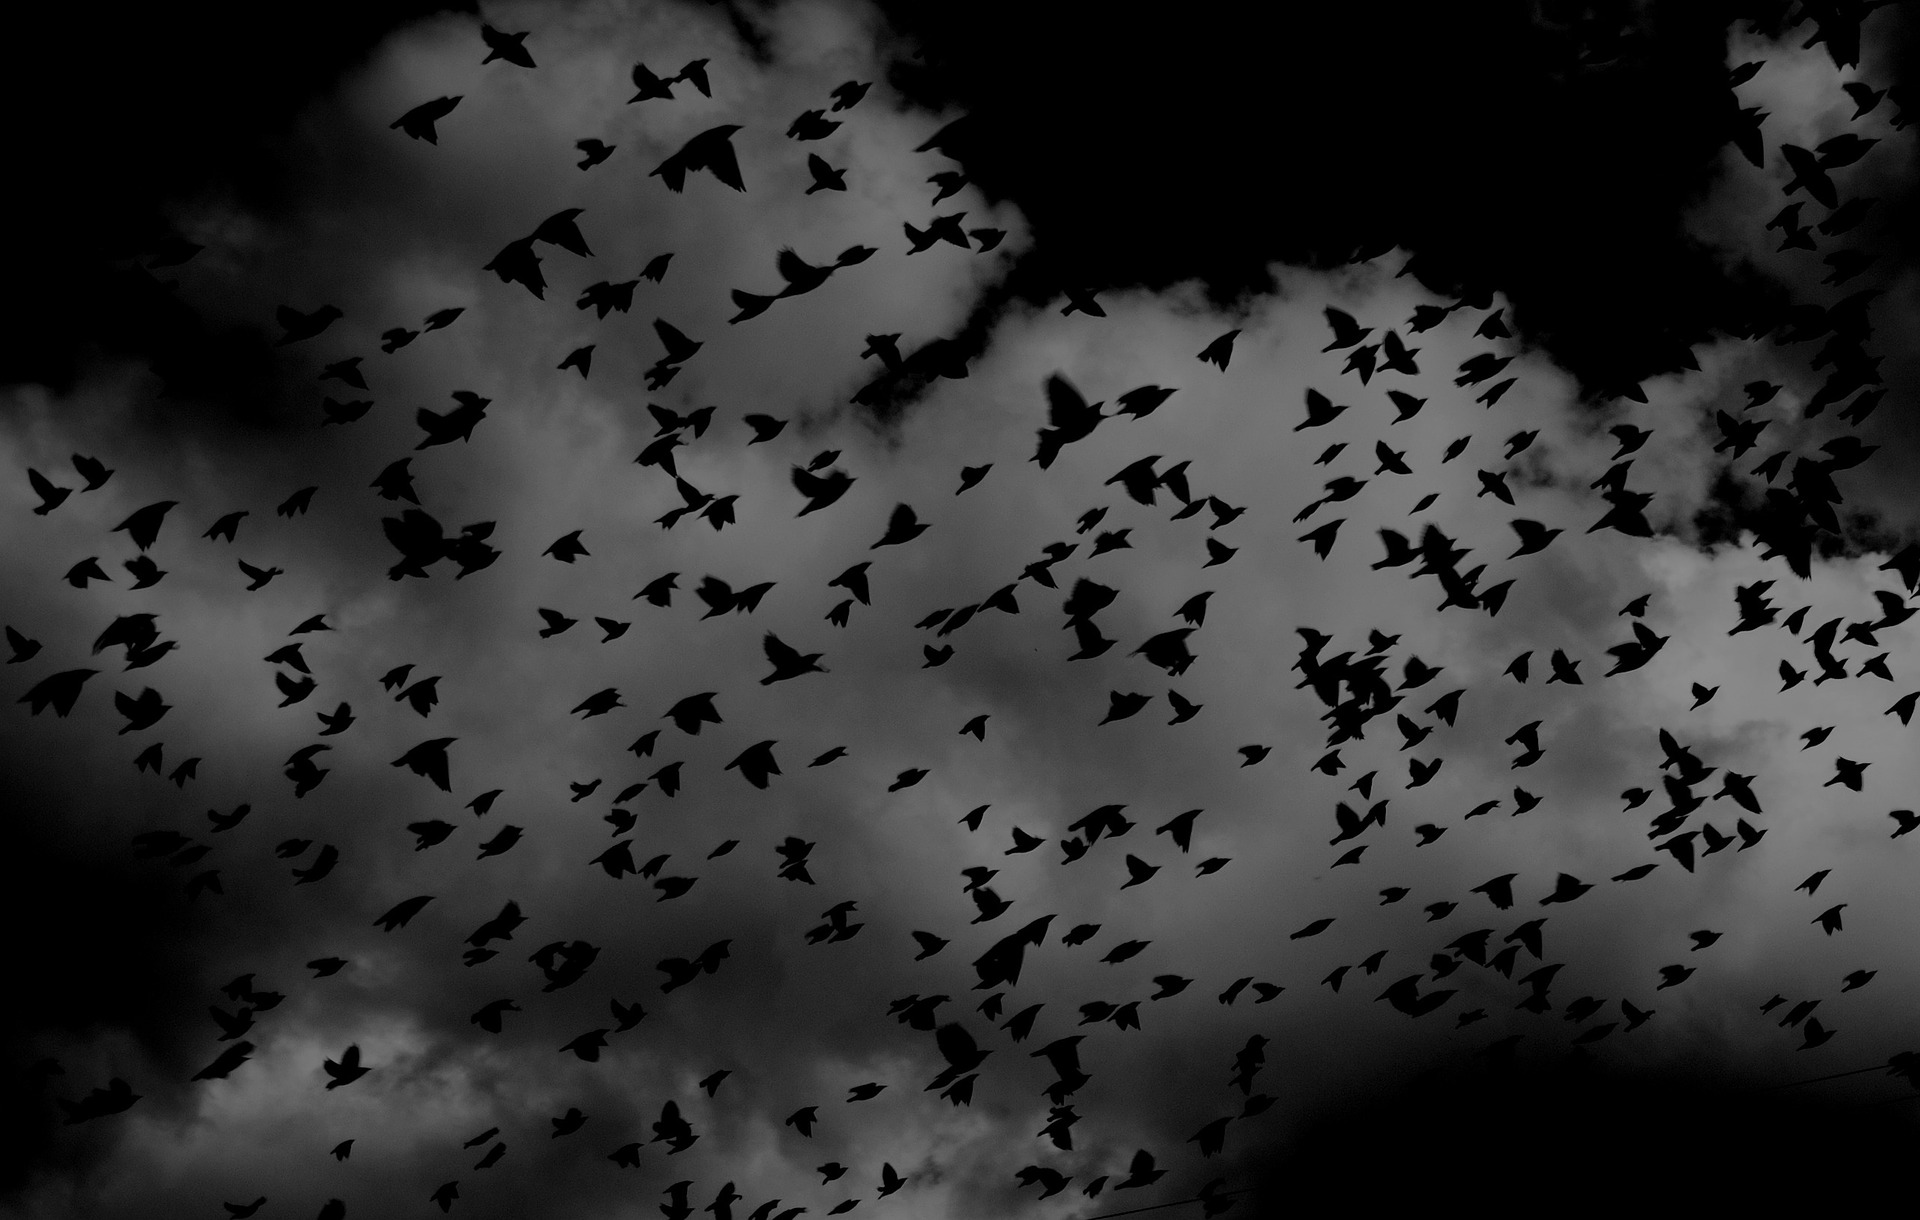 A Murder of Crows https://pixabay.com/photos/birds-flock-wings-flying-sky-691274/